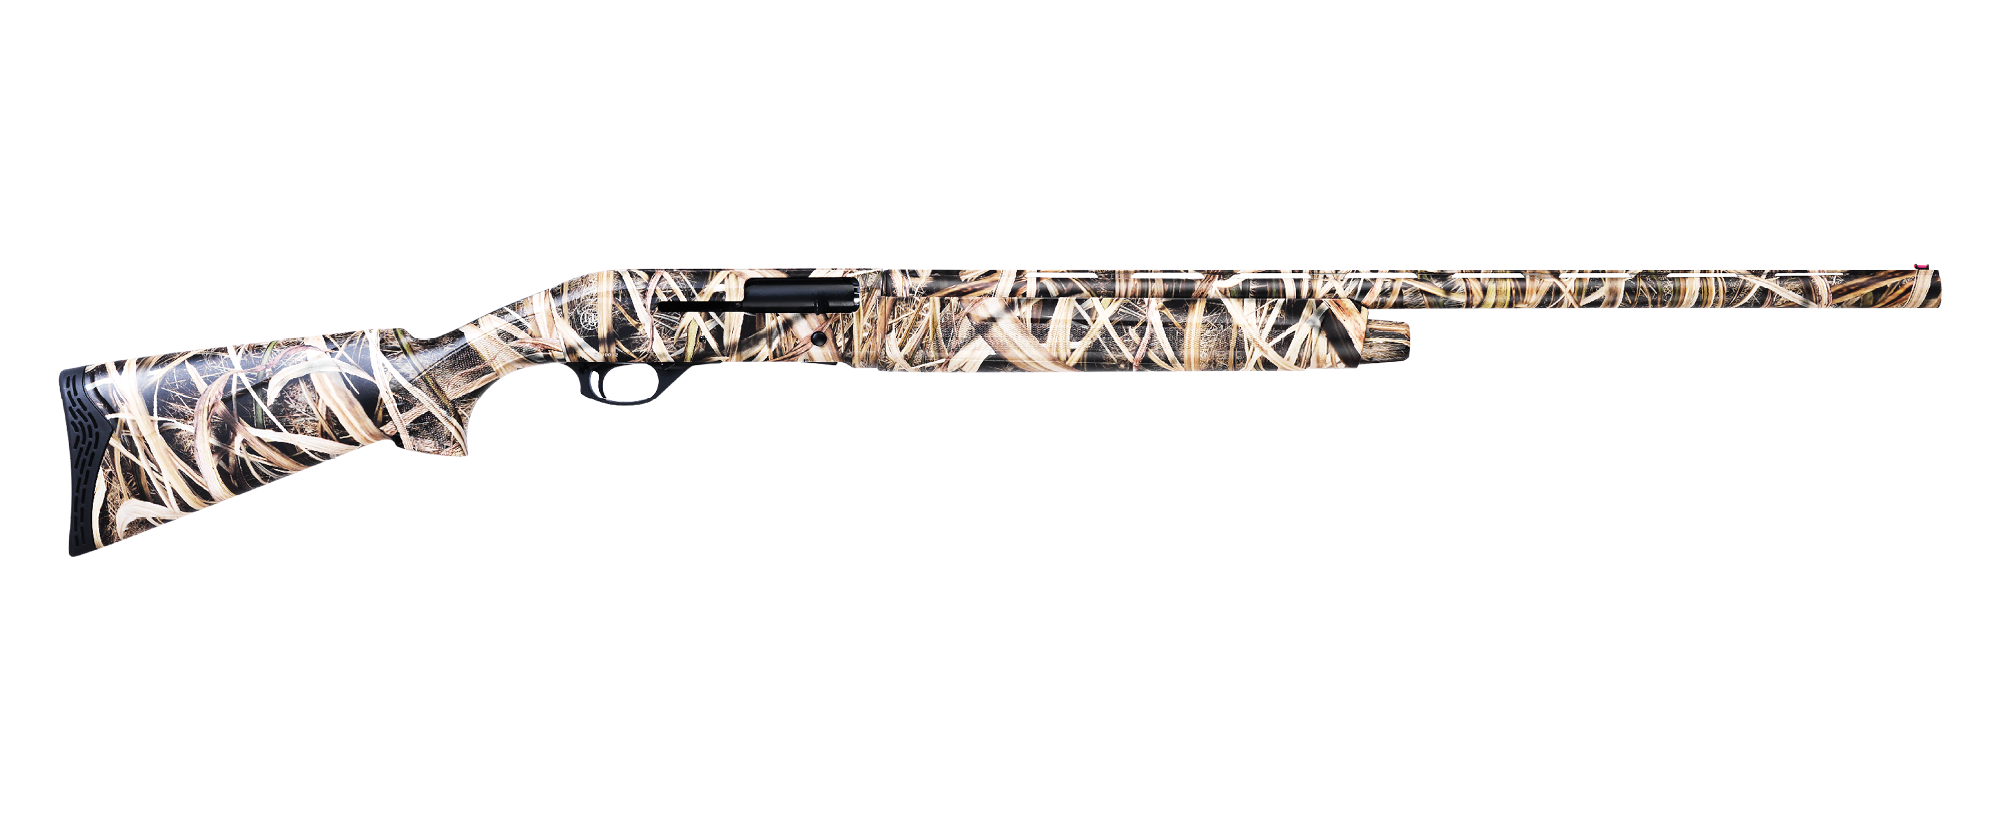 "EG 320 CAMO SYNTHETIC 12 GAUGE / 3"" - 76 mm"